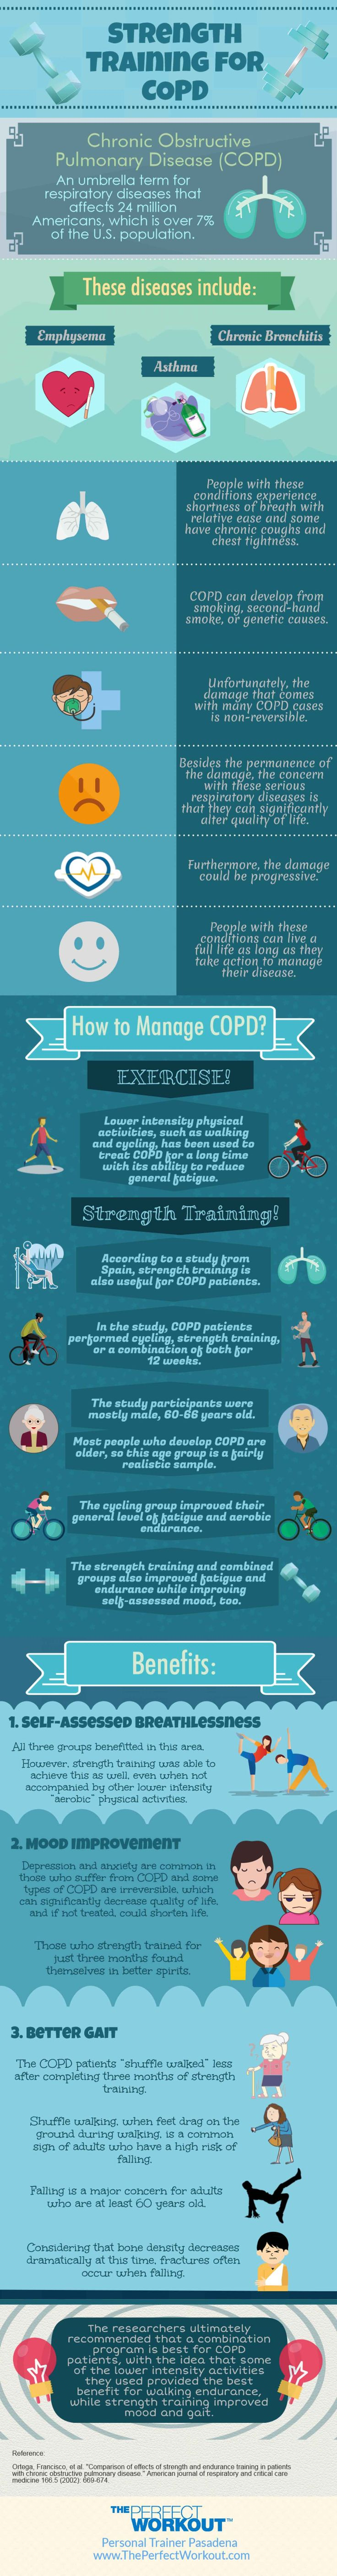 Did you know that Strength Training is helpful to Chronic Obstructive Pulmonary Disease, otherwise known as COPD, patients? Find out more in this infographic by ThePerfectWorkout.com.